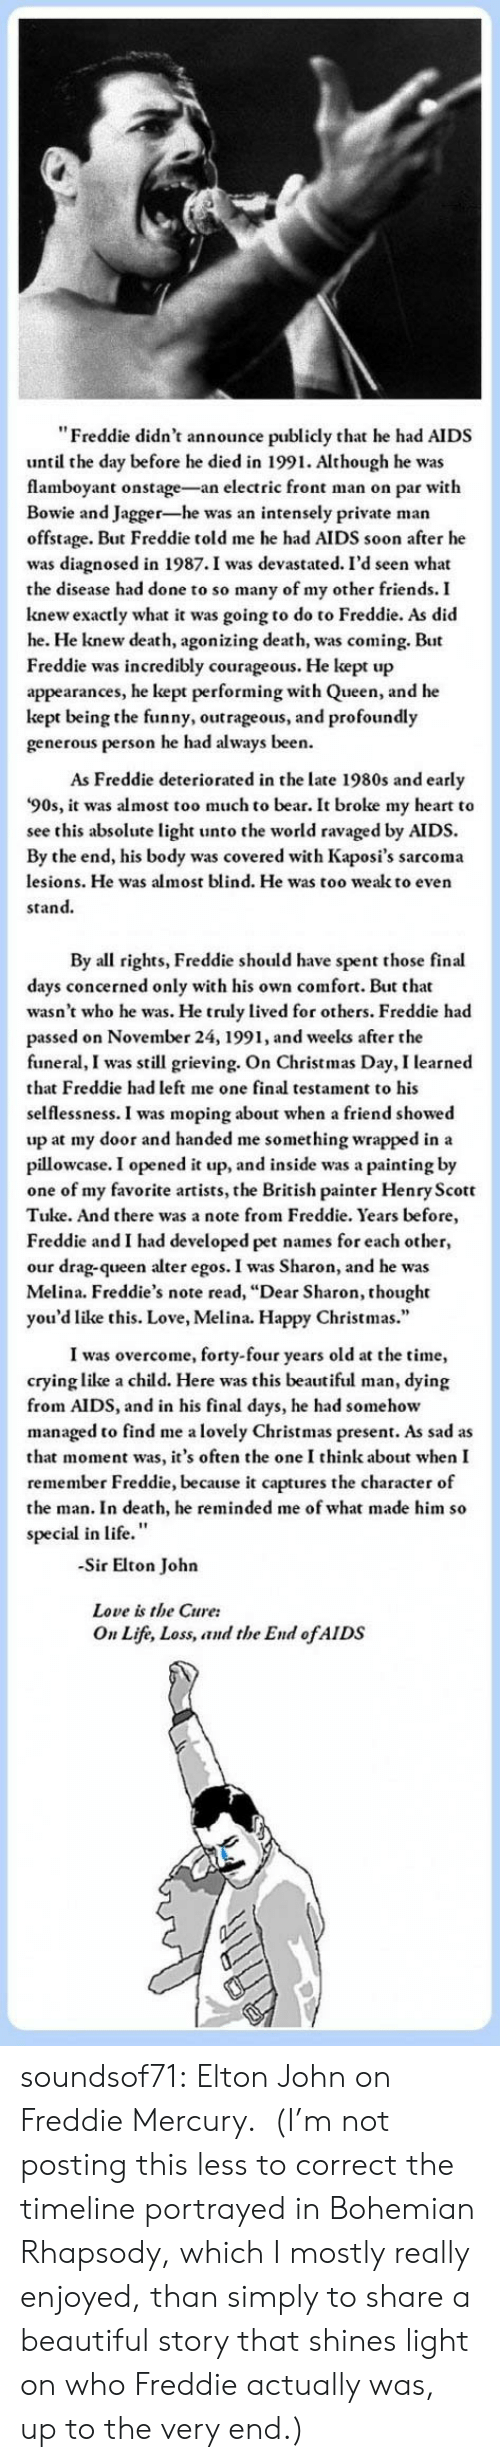 """Elton: """"Freddie didn't announce publicly that he had AIDS  until the day before he died in 1991. Although he was  flamboyant onstage-an electric front man on par with  Bowie and Jagger-he was an intensely private man  offstage. But Freddie told me he had AIDS soon after he  was diagnosed in 1987.I was devastated. I'd seen what  the disease had done to so many of my other friends. I  knew exactly what it was going to do to Freddie. As did  he. He knew death, agonizing death, was coming. But  Freddie was incredibly courageous. He kept up  appearances, he kept performing with Queen, and he  kept being the funny, outrageous, and profoundly  generous person he had always been.  As Freddie deteriorated in the late 1980s and early  '90s, it was almost too much to bear. It broke my heart to  see this absolute light unto the world ravaged by AIDS.  By the end, his body was covered with Kaposi's sarcoma  lesions. He was almost blind. He was too wealk to even  stand.   By all rights, Freddie should have spent those final  days concerned only with his own comfort. But that  wasn't who he was. He truly lived for others. Freddie had  passed on November 24, 1991, and weelks after the  funeral, I was still grieving. On Christmas Day, I learned  that Freddie had left me one final testament to his  selflessness. I was moping about when a friend showed  up at my door and handed me something wrapped in a  pillowcase. I opened it up, and inside was a painting by  one of my favorite artists, the British painter Henry Scott  Tuke. And there was a note from Freddie. Years before  Freddie and I had developed pet names for each other,  our drag-queen alter egos. I was Sharon, and he was  Melina. Freddie's note read, """"Dear Sharon, thought  you'd like this. Love, Melina. Happy Christmas.""""  I was overcome, forty-four years old at the time,  crying like a child. Here was this beautiful man, dying  from AIDS, and in his final days, he had somehow  managed to find me a lovely Christmas present. As"""